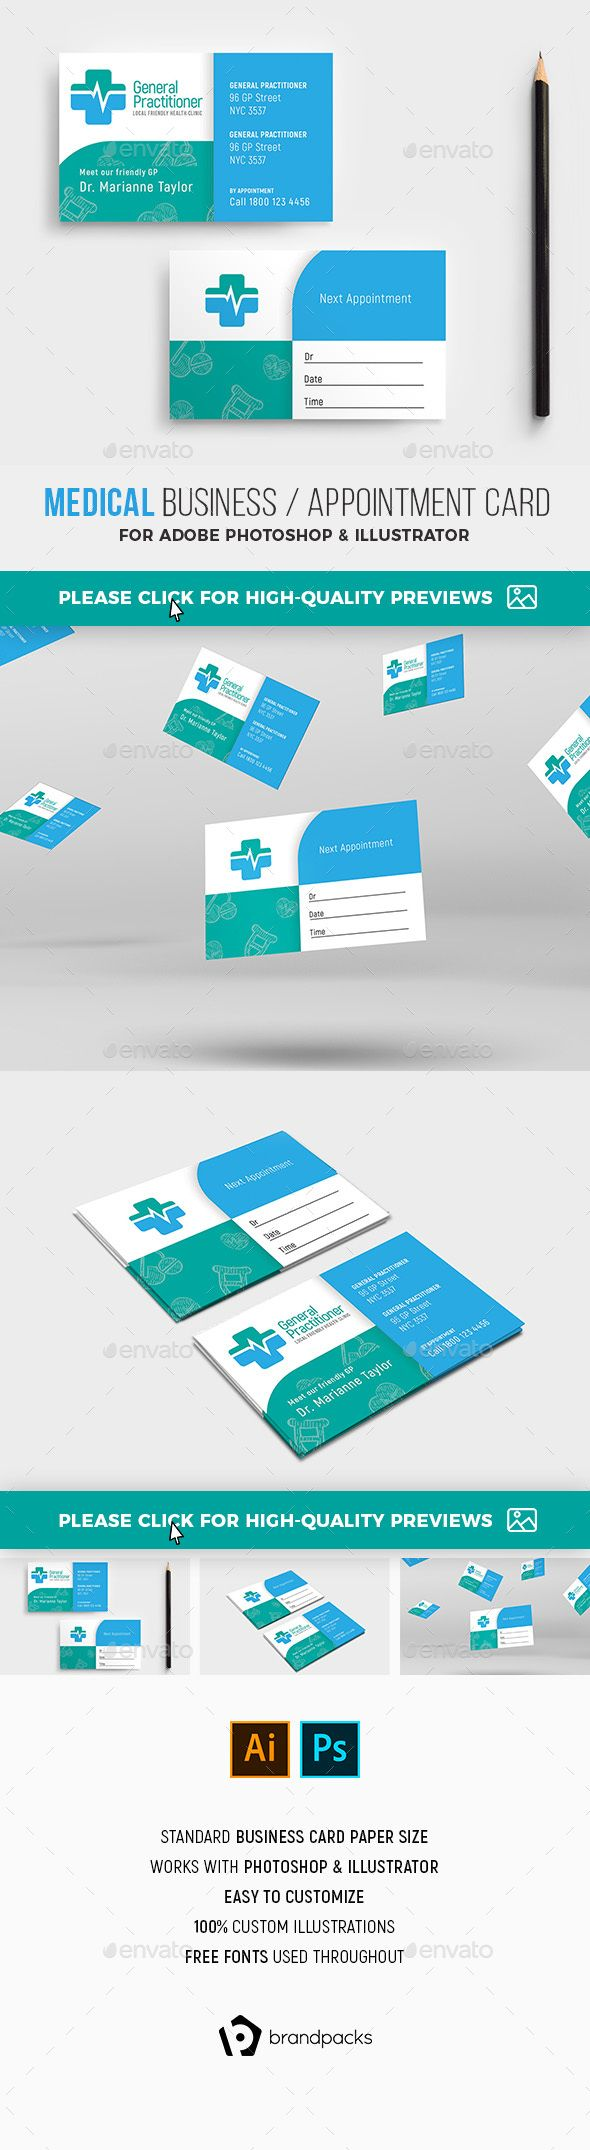 Medical Appointment Card Template Industry Specific Business Cards Business Card Template Design Medical Business Card Free Business Card Templates